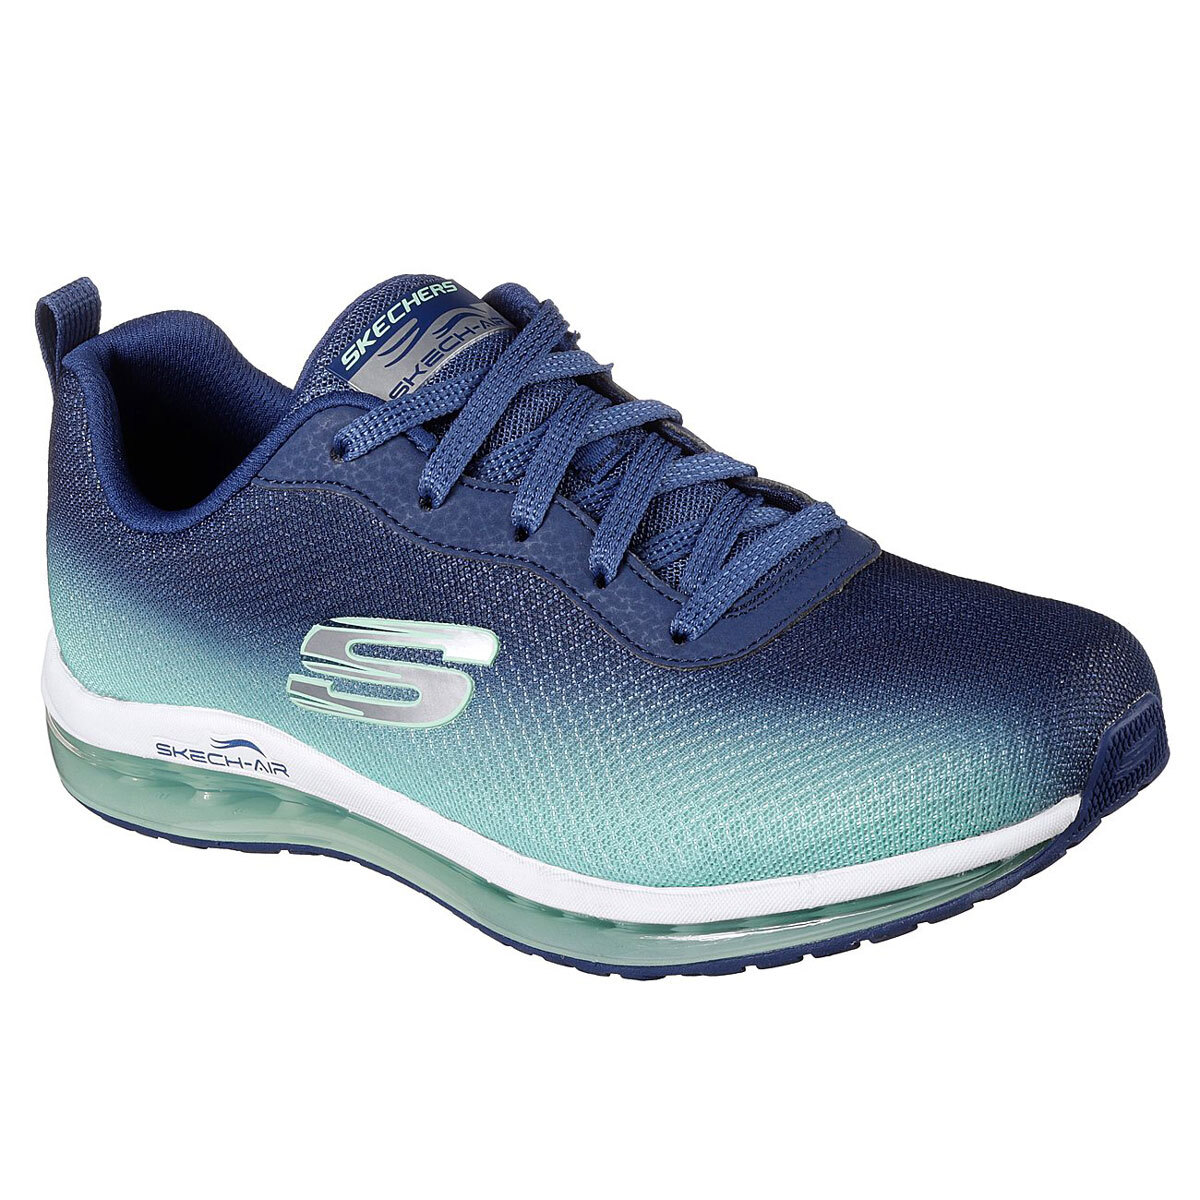 Skech Air Element Shoes in Blue